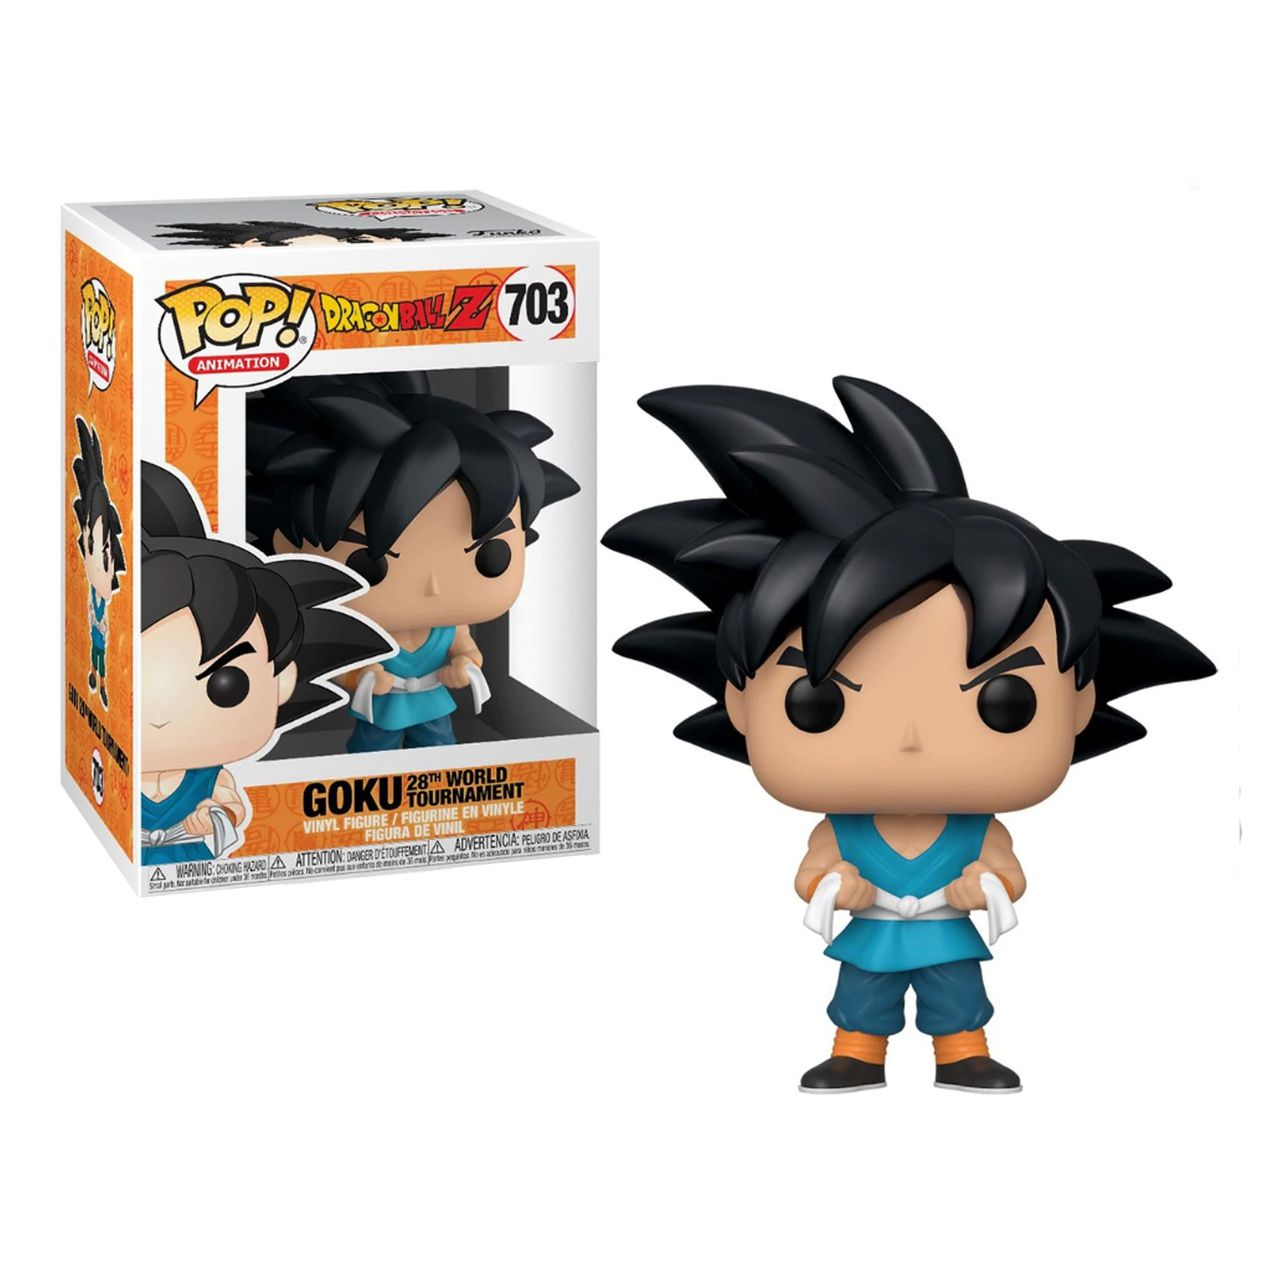 Funko Pop! Goku (BU Word Tournament): Dragon Ball Z #703 - Funko